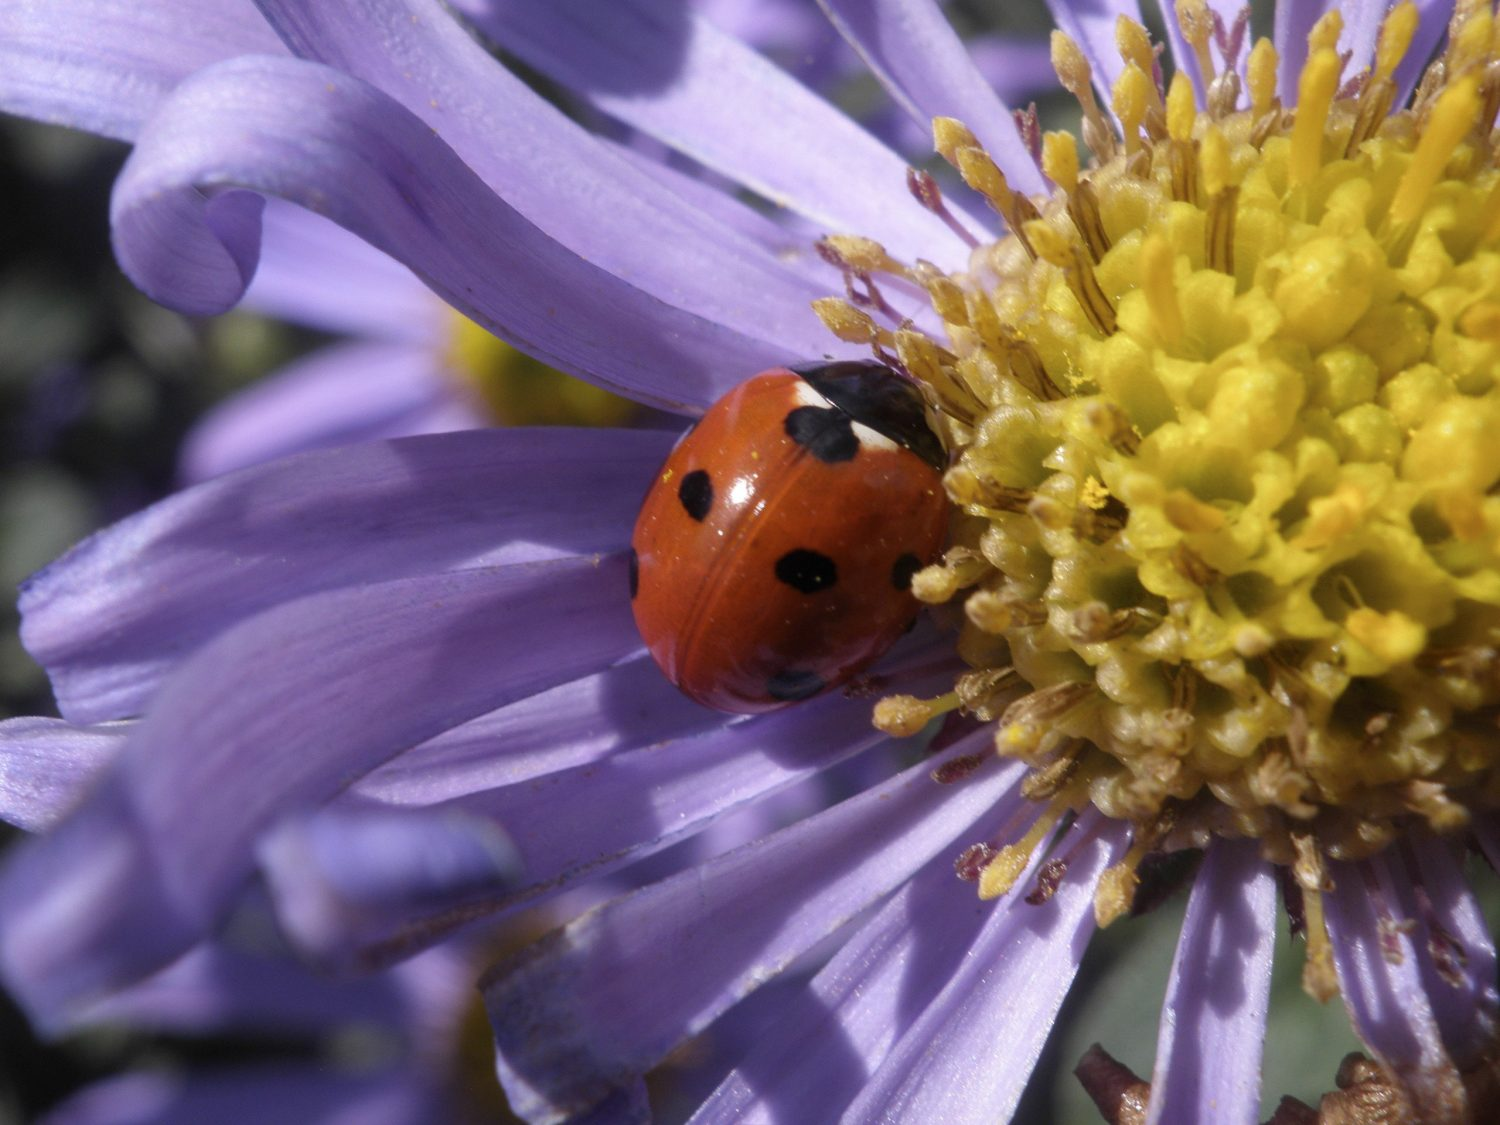 Ladybird on an aster